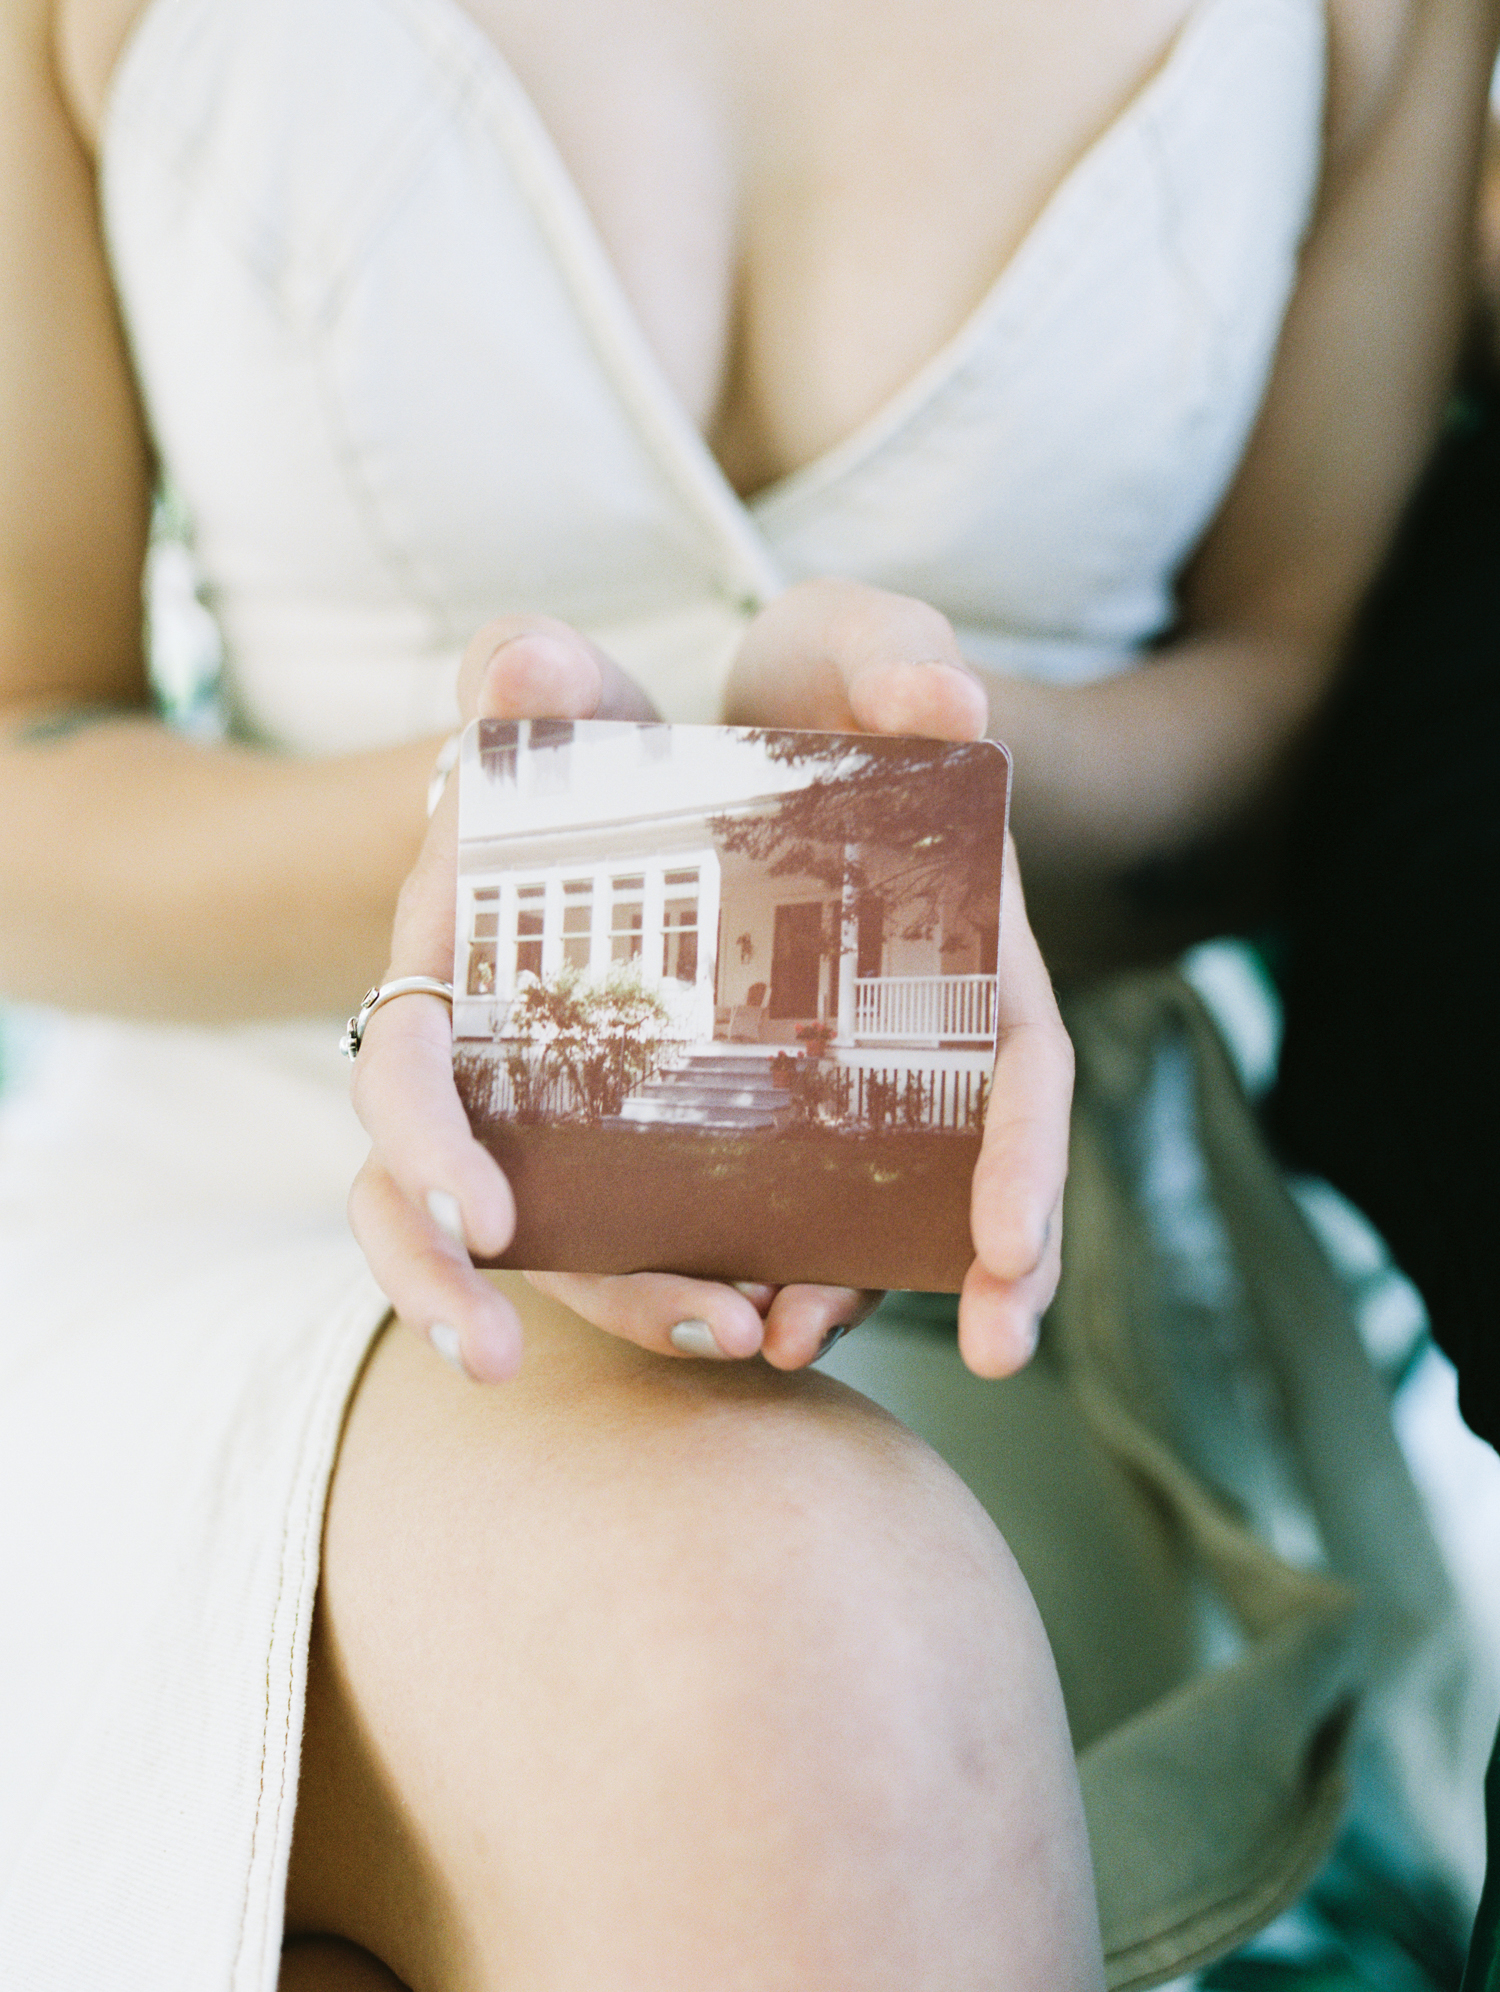 A woman holds an old photograph of her family's summer home in Petoskey, Michigan